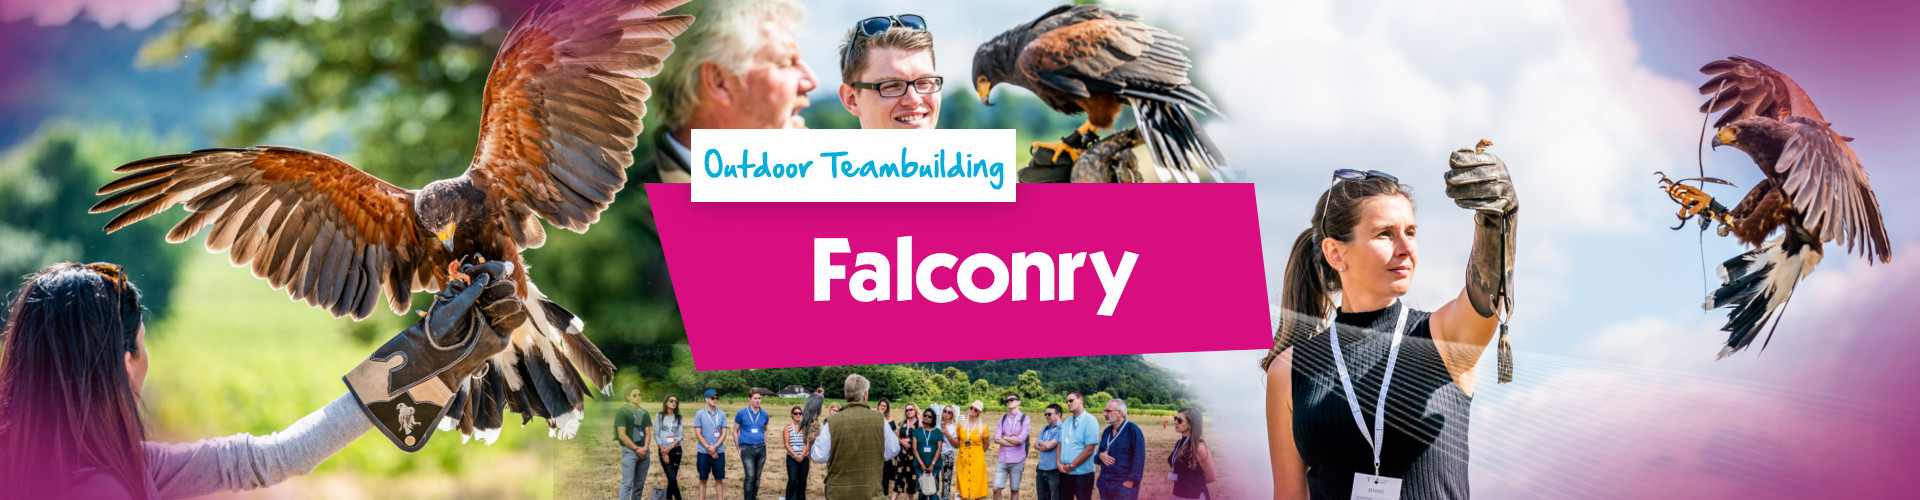 Falconry Banner